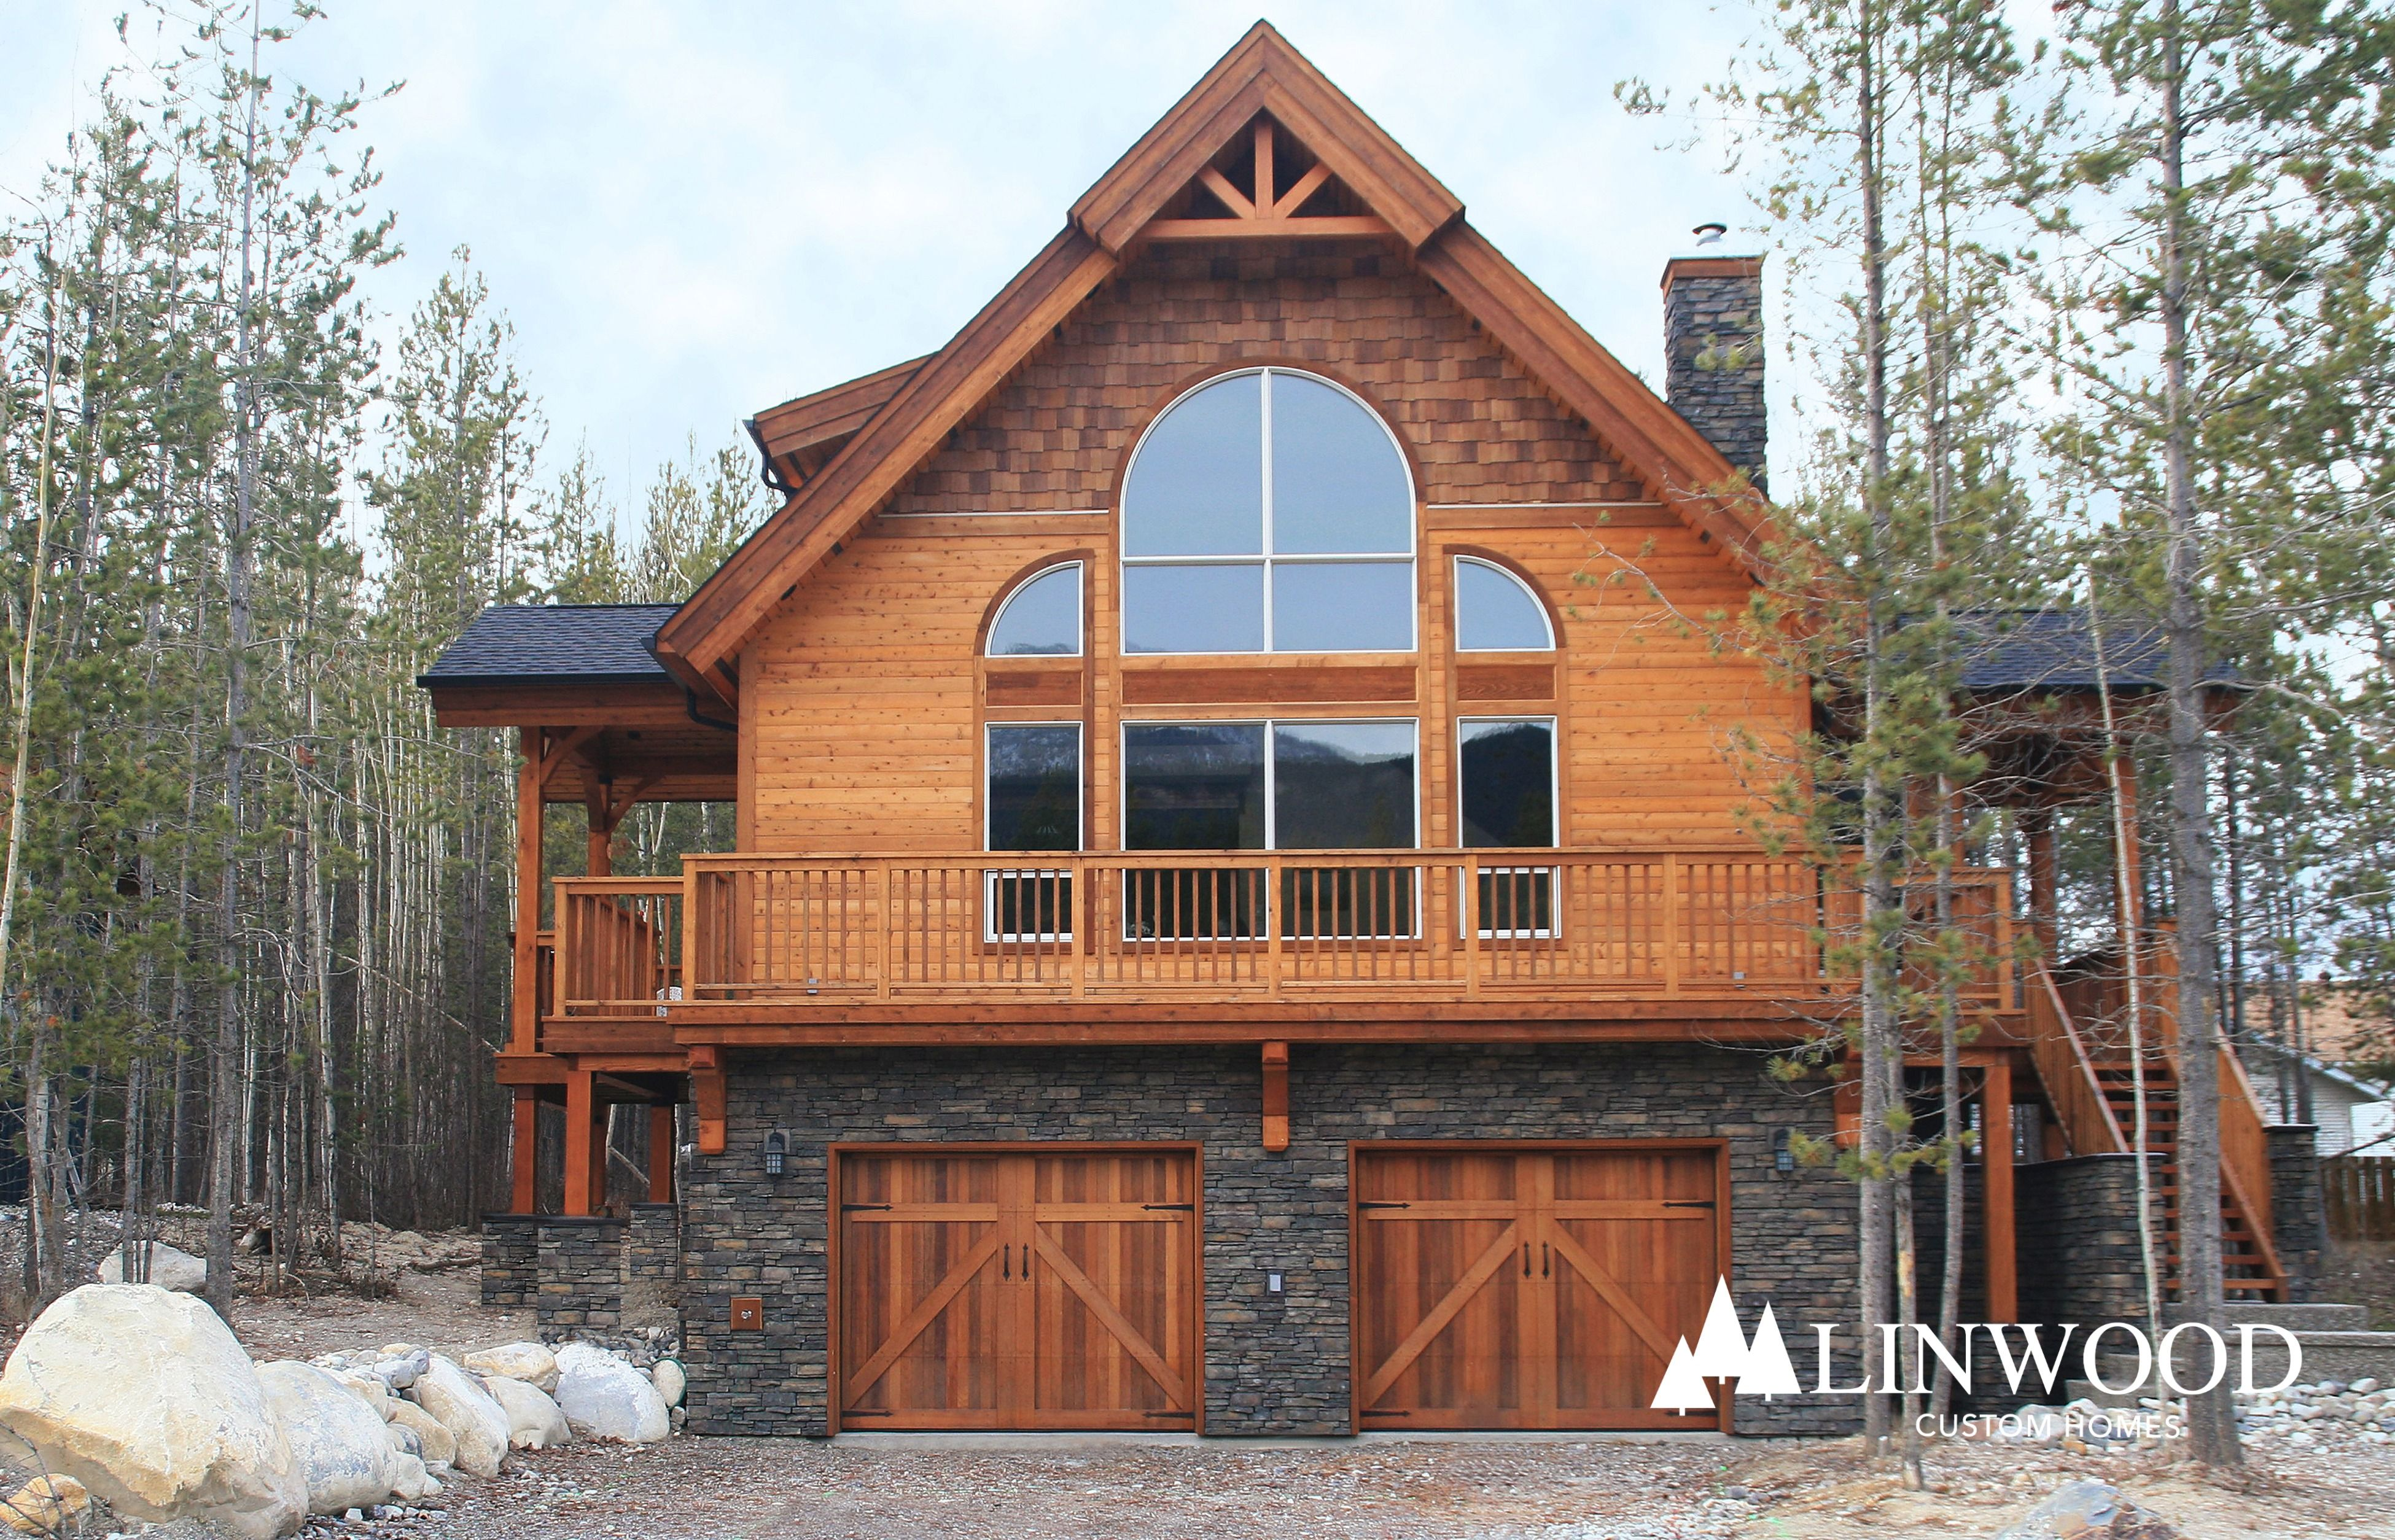 Pre Built Advantages Fast Assembly With Panelized Kit Log Homes Assembling A Log Homes With Panelized Log Home Kits Mak Log Home Kits Log Homes Log Home Plans